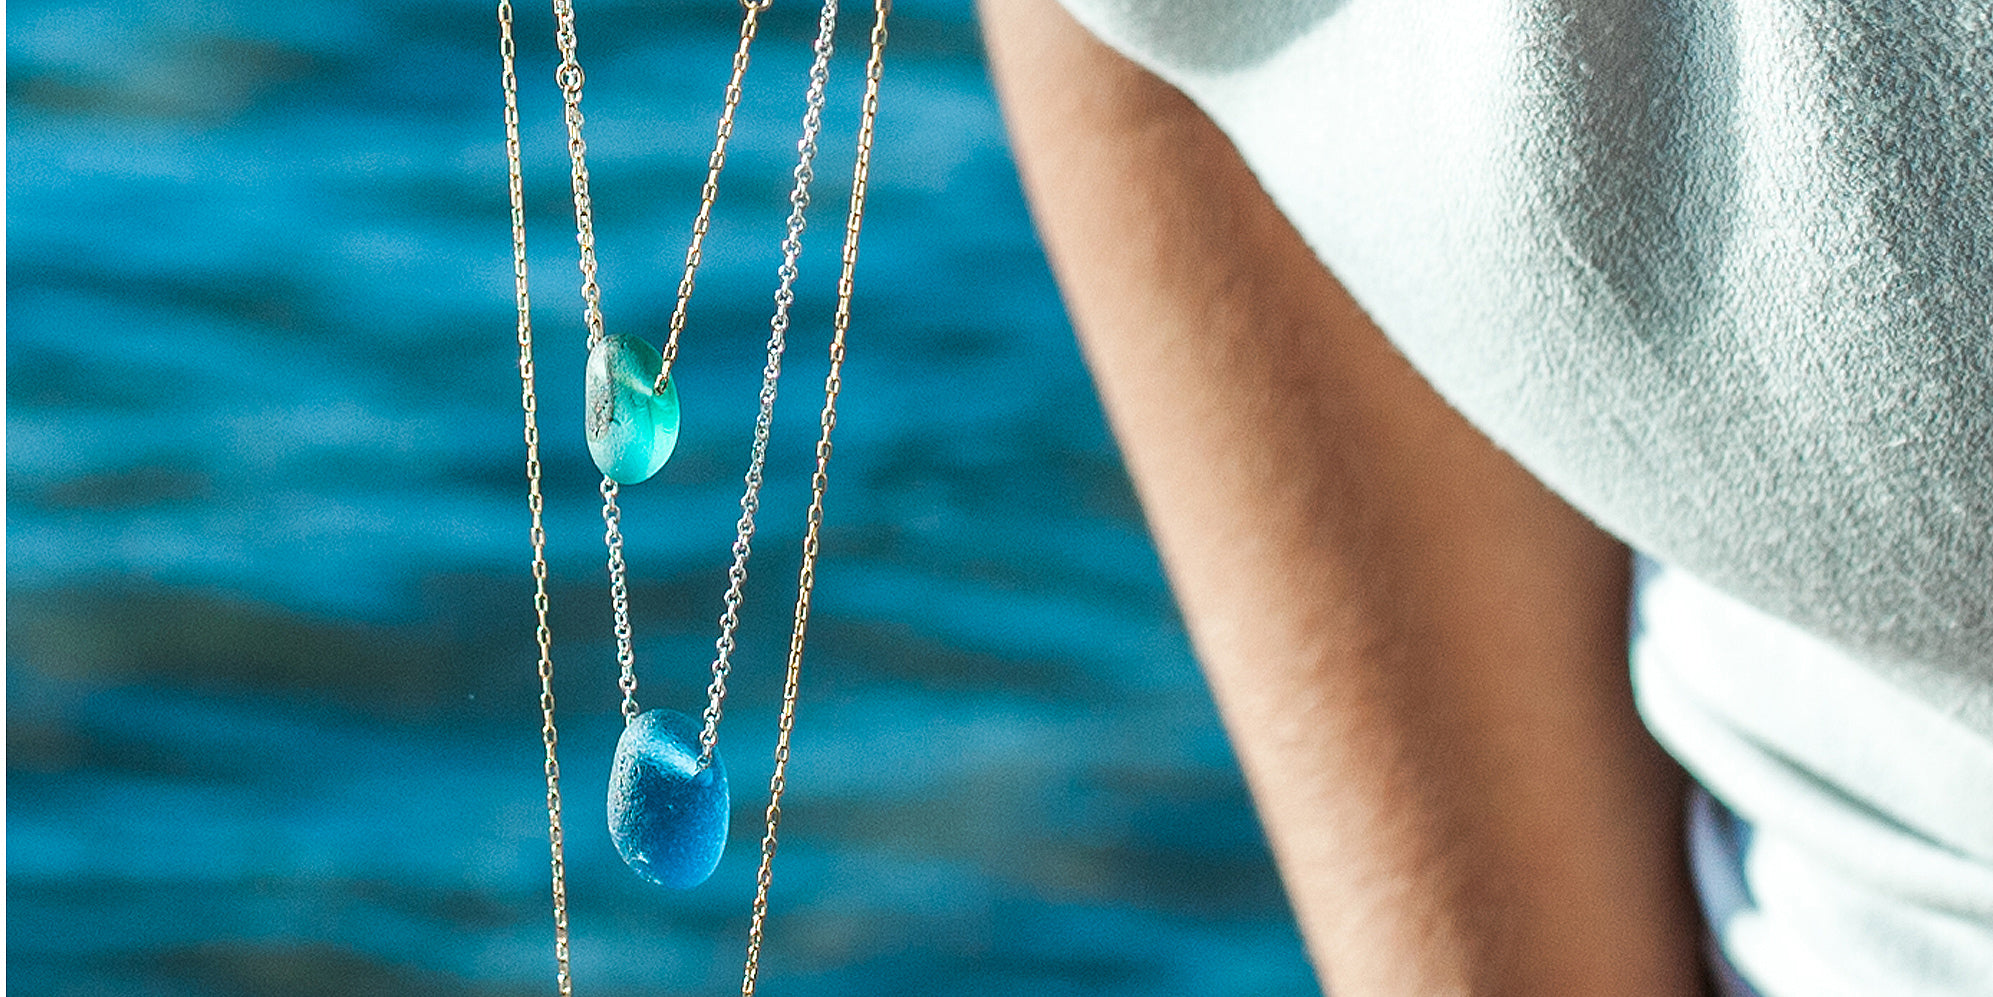 Our Seaglass Jewellery - Inspired by the Ocean